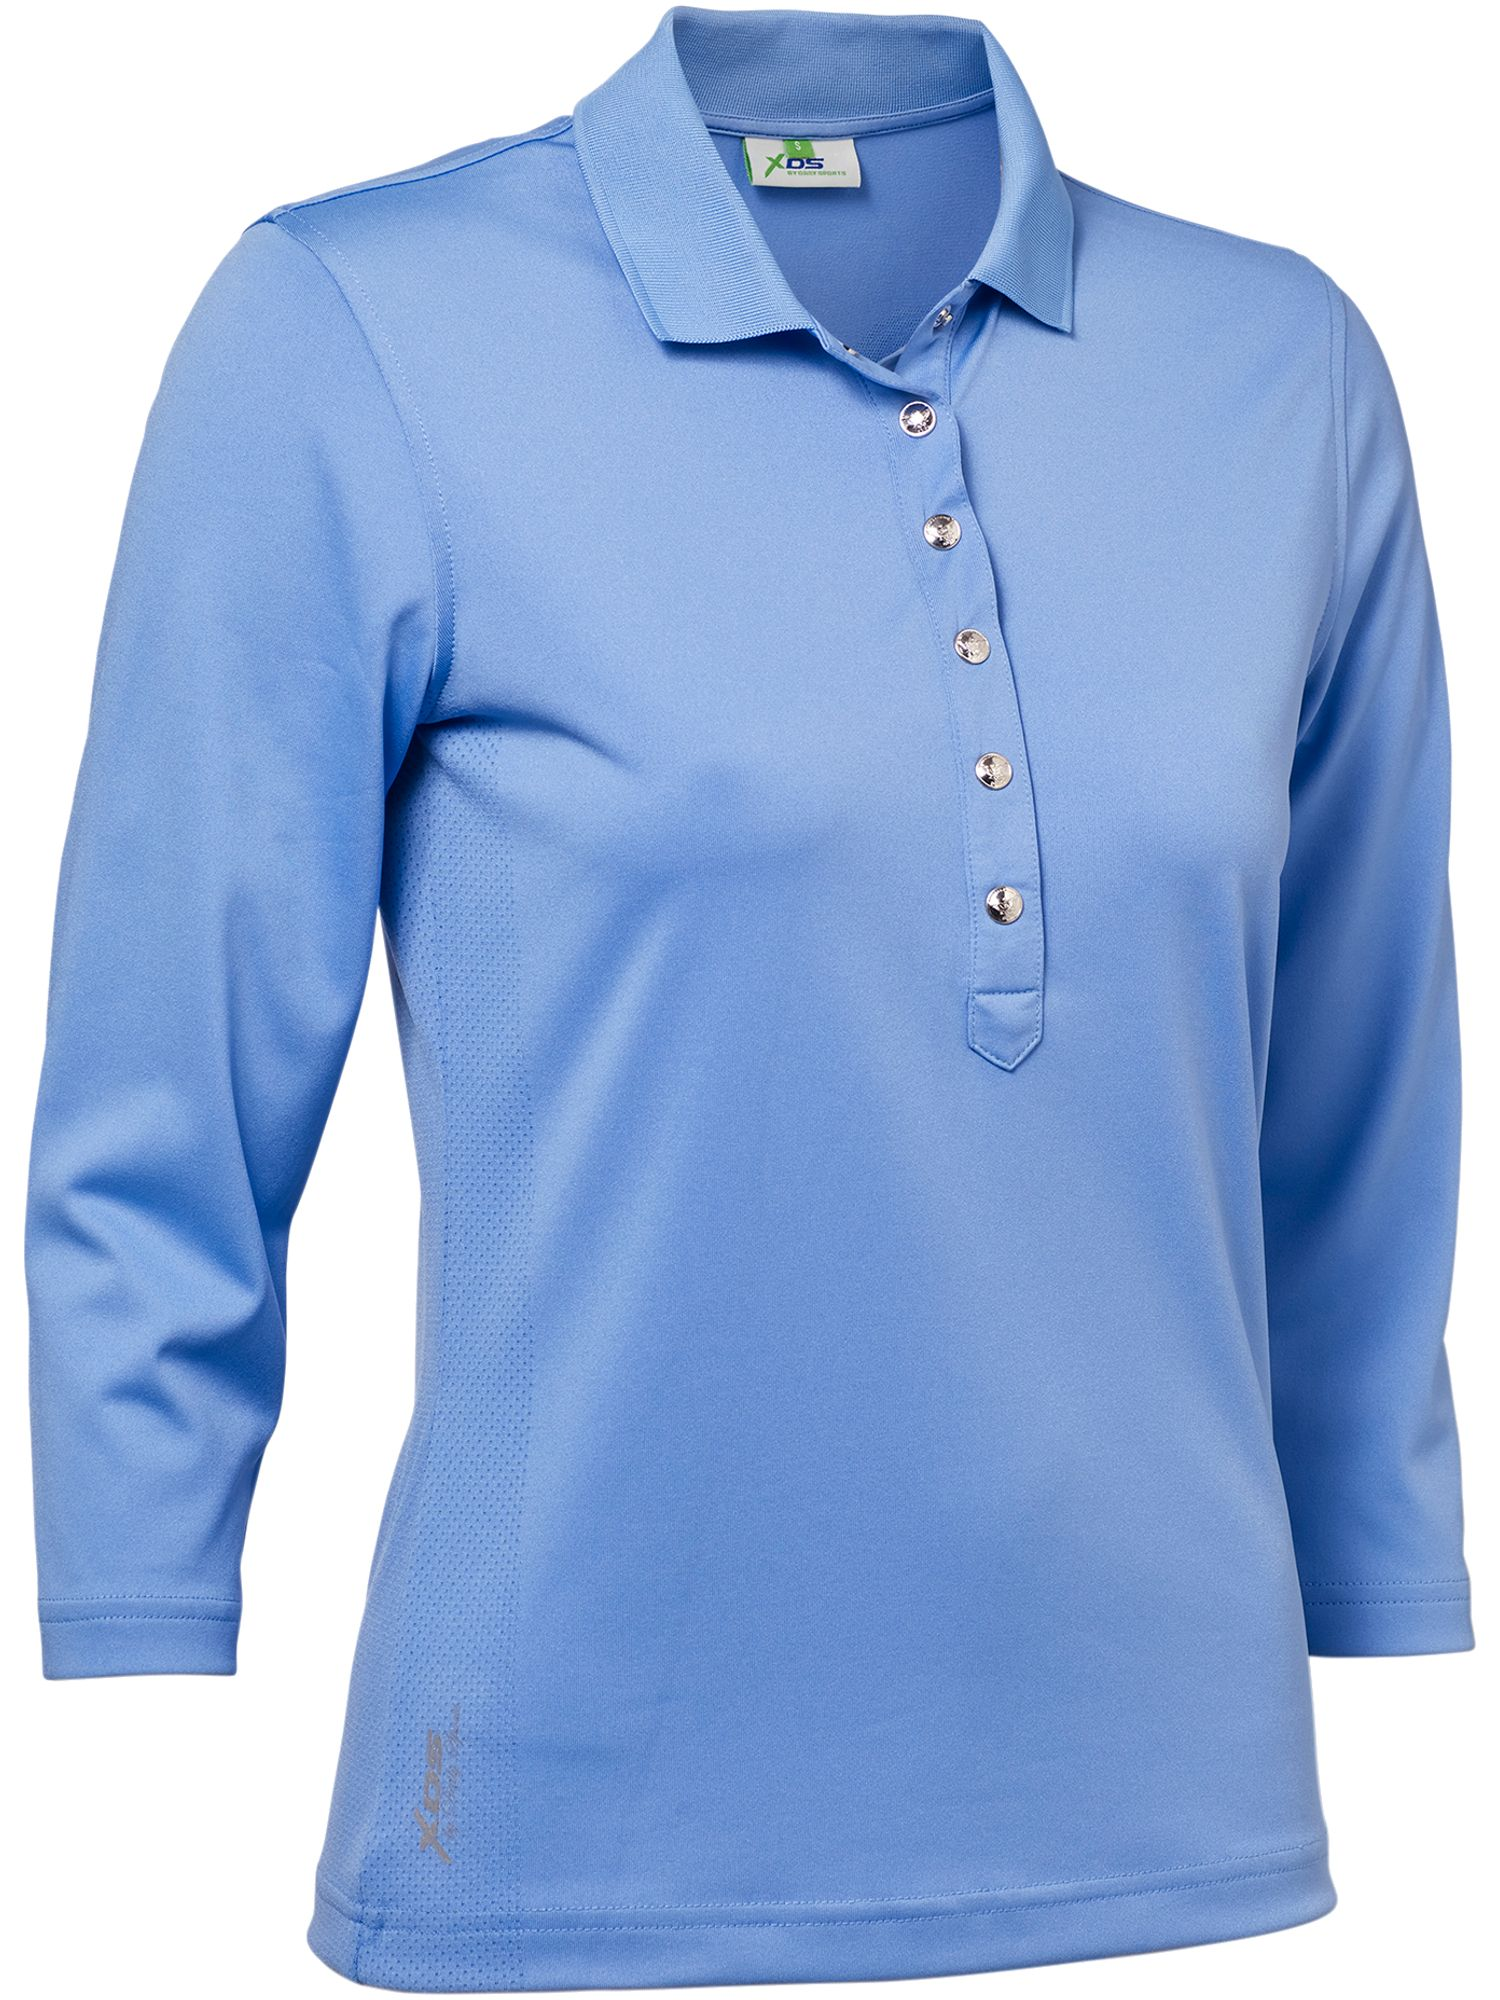 Daily Sports Mindy 3/4 Sleeve Polo, Blue